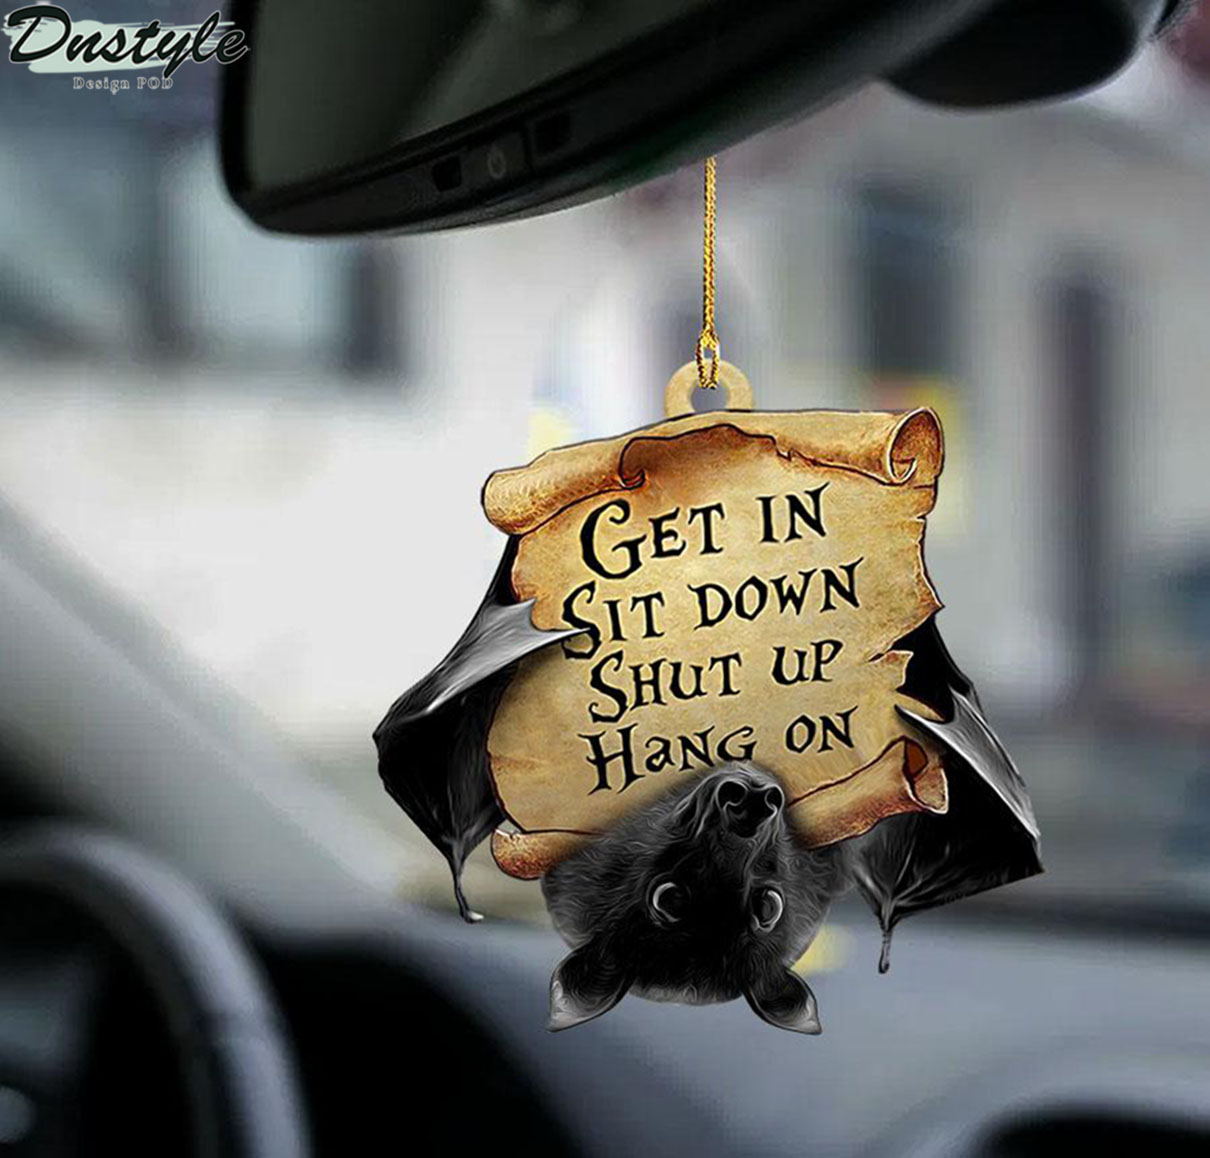 Bat get in sit down shut up hang on car hanging ornament 2